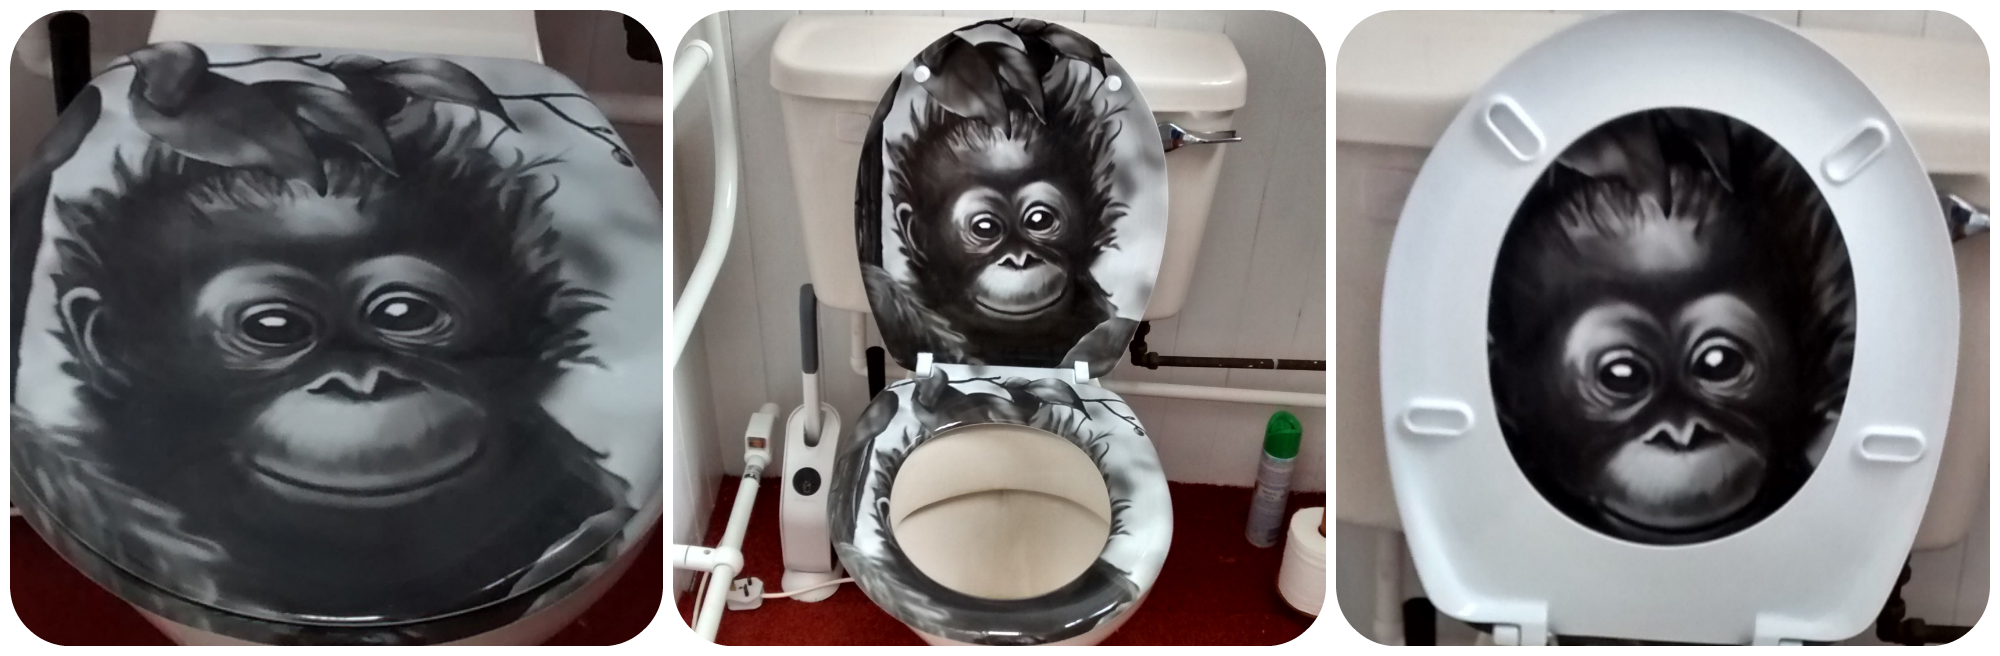 Travelling around England for a year from a Cambridge home with a monkey toilet.